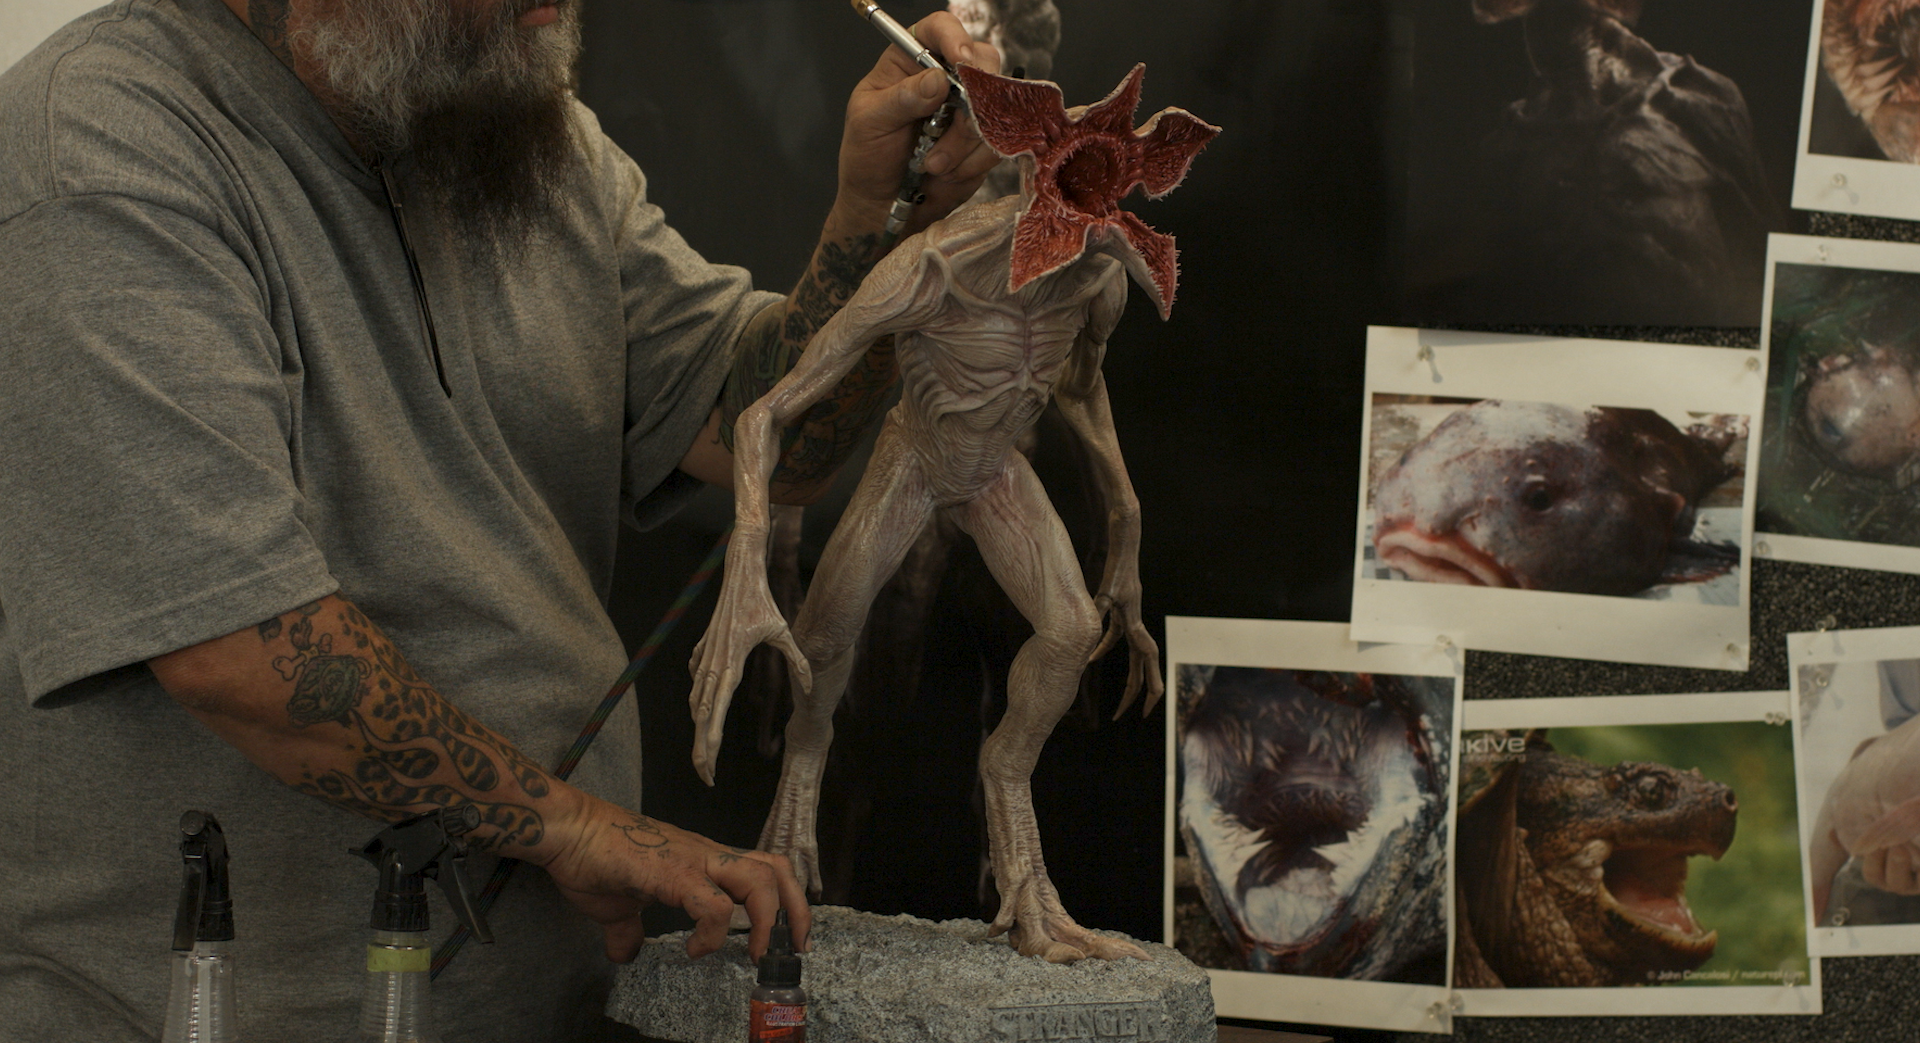 Traditional painting and finishing techniques are used on the final maquette before presenting to directors.